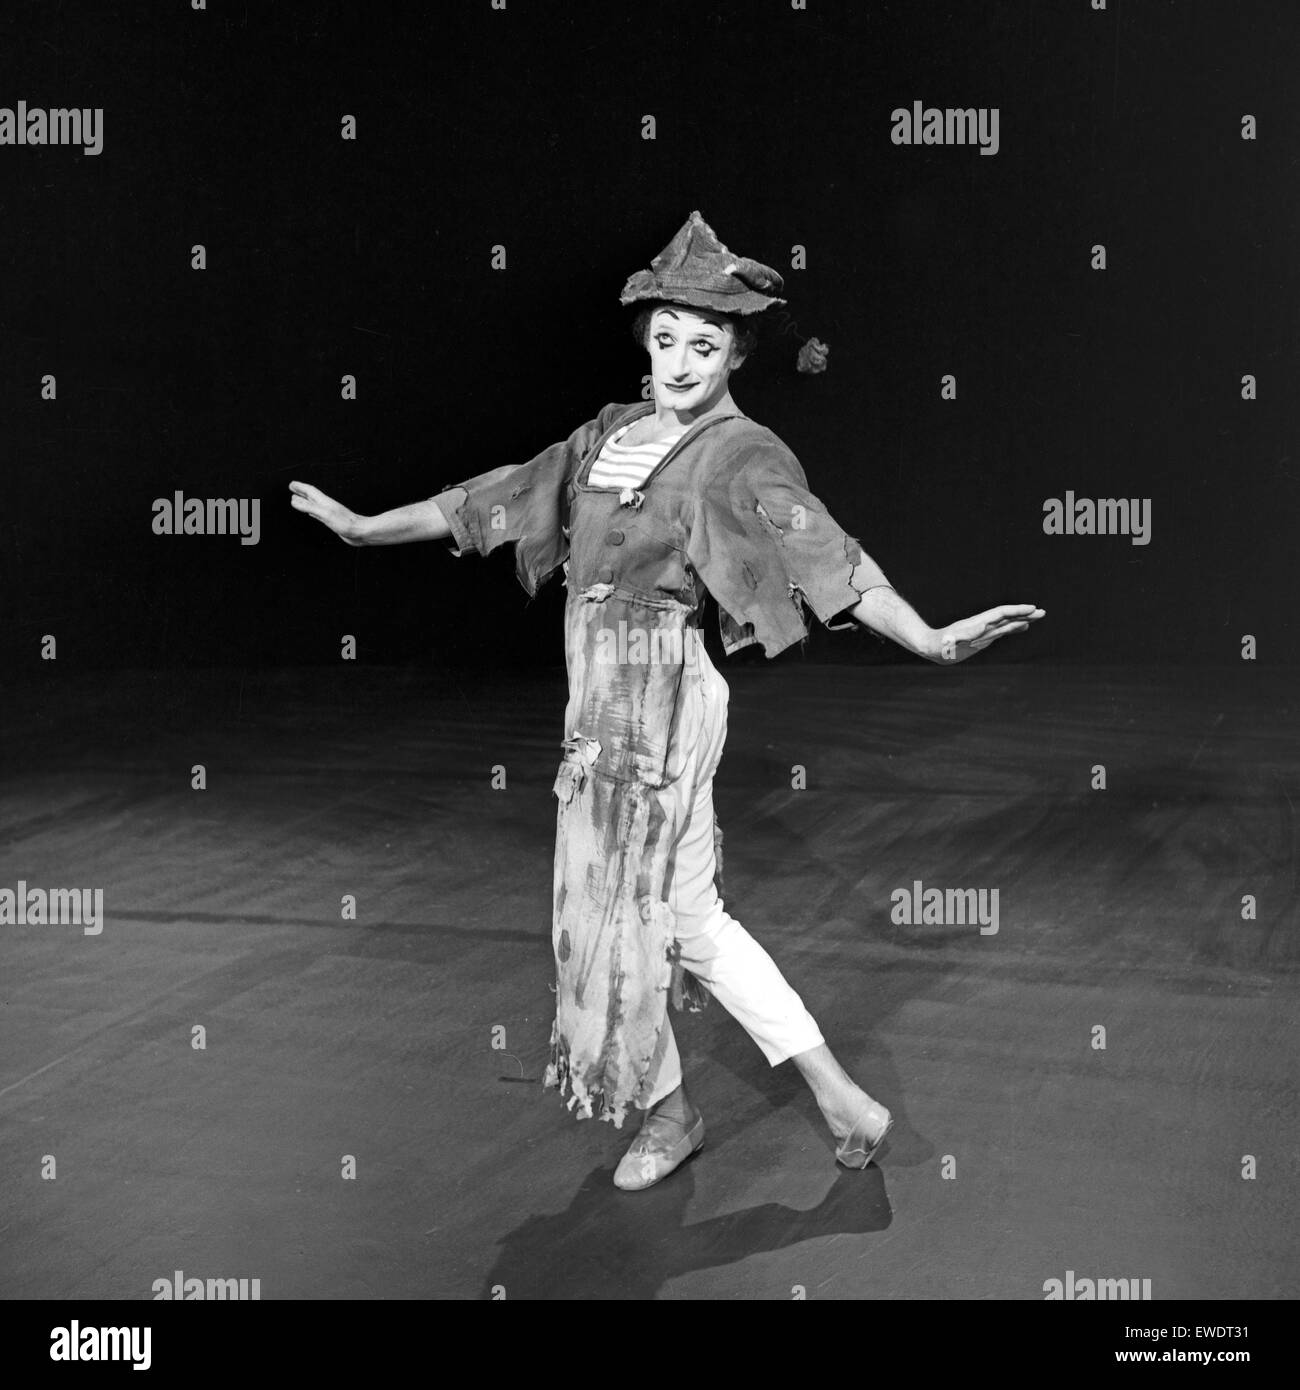 Französischer Pantomime Marcel Marceau in Hamburg, Deutschland 1960er Jahre. French pantomime Marcel Marceau performing Stock Photo